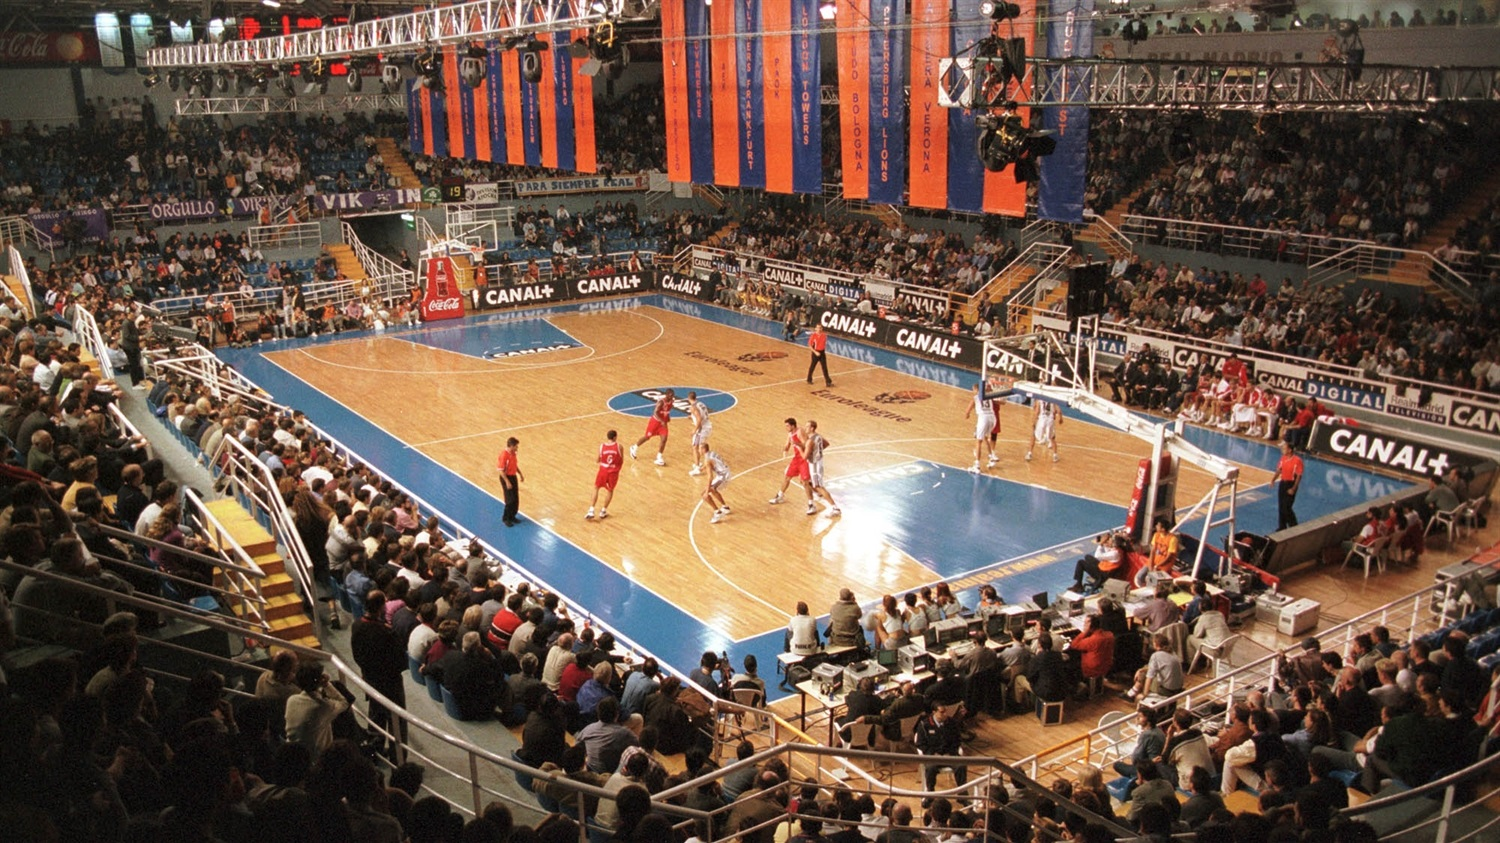 A panoramic view of the EuroLeague inaugural game underway